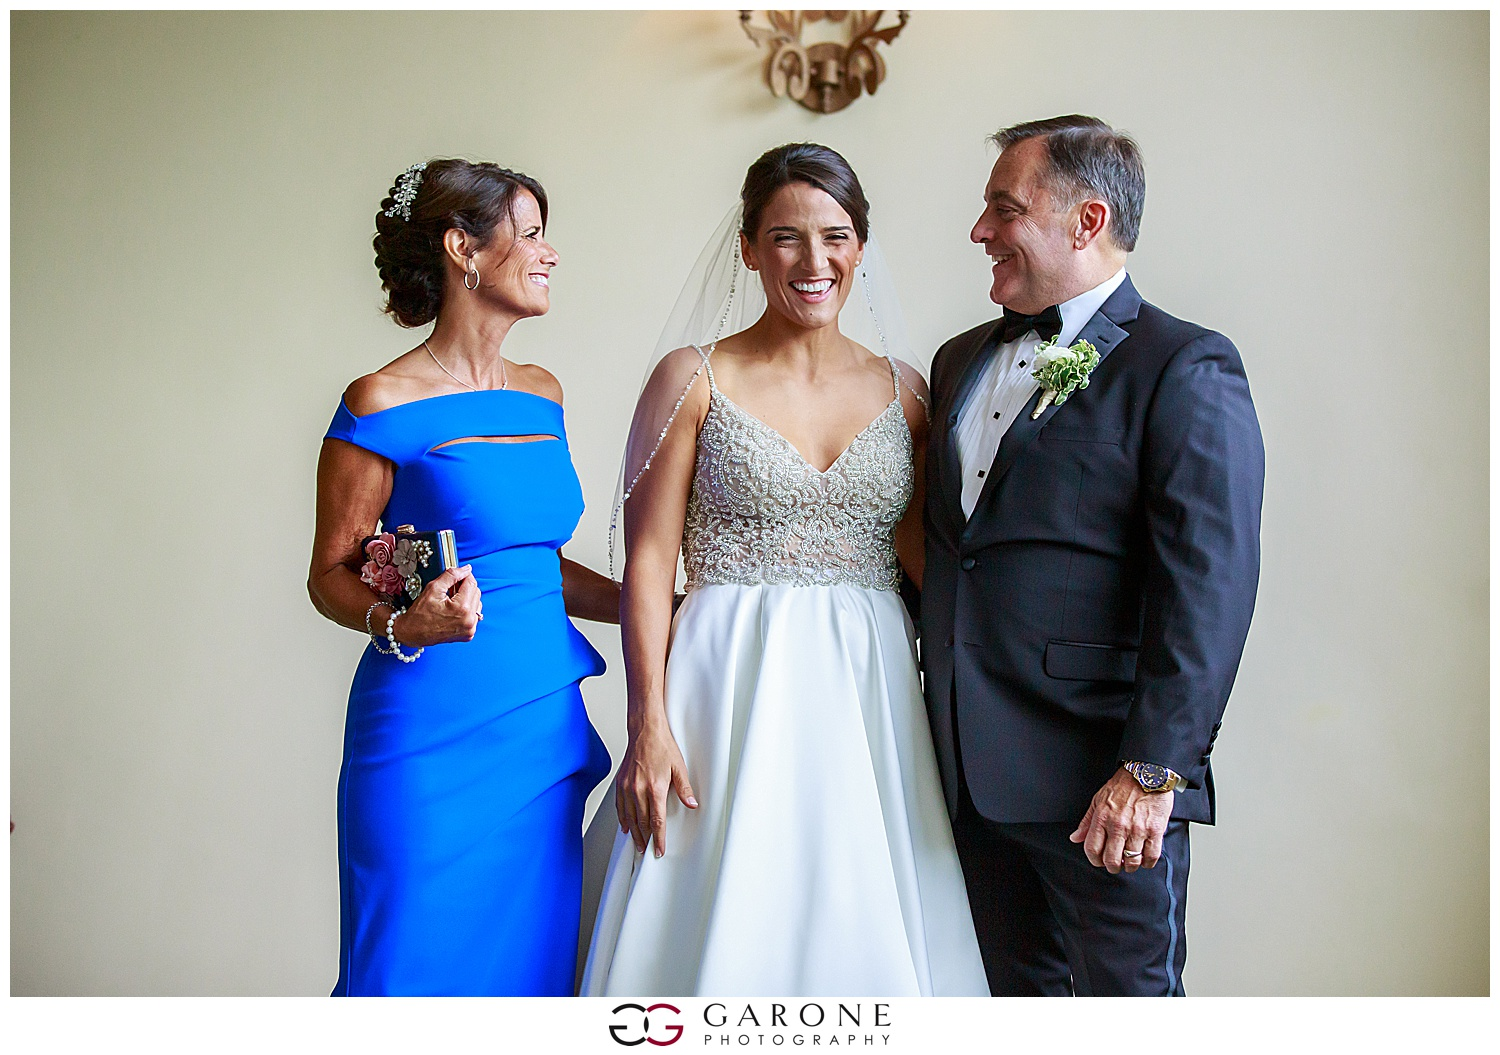 Omni_Mount_Washington_hotel_Wedding_White_Mountain_Wedding_Garone_Photography_0012.jpg